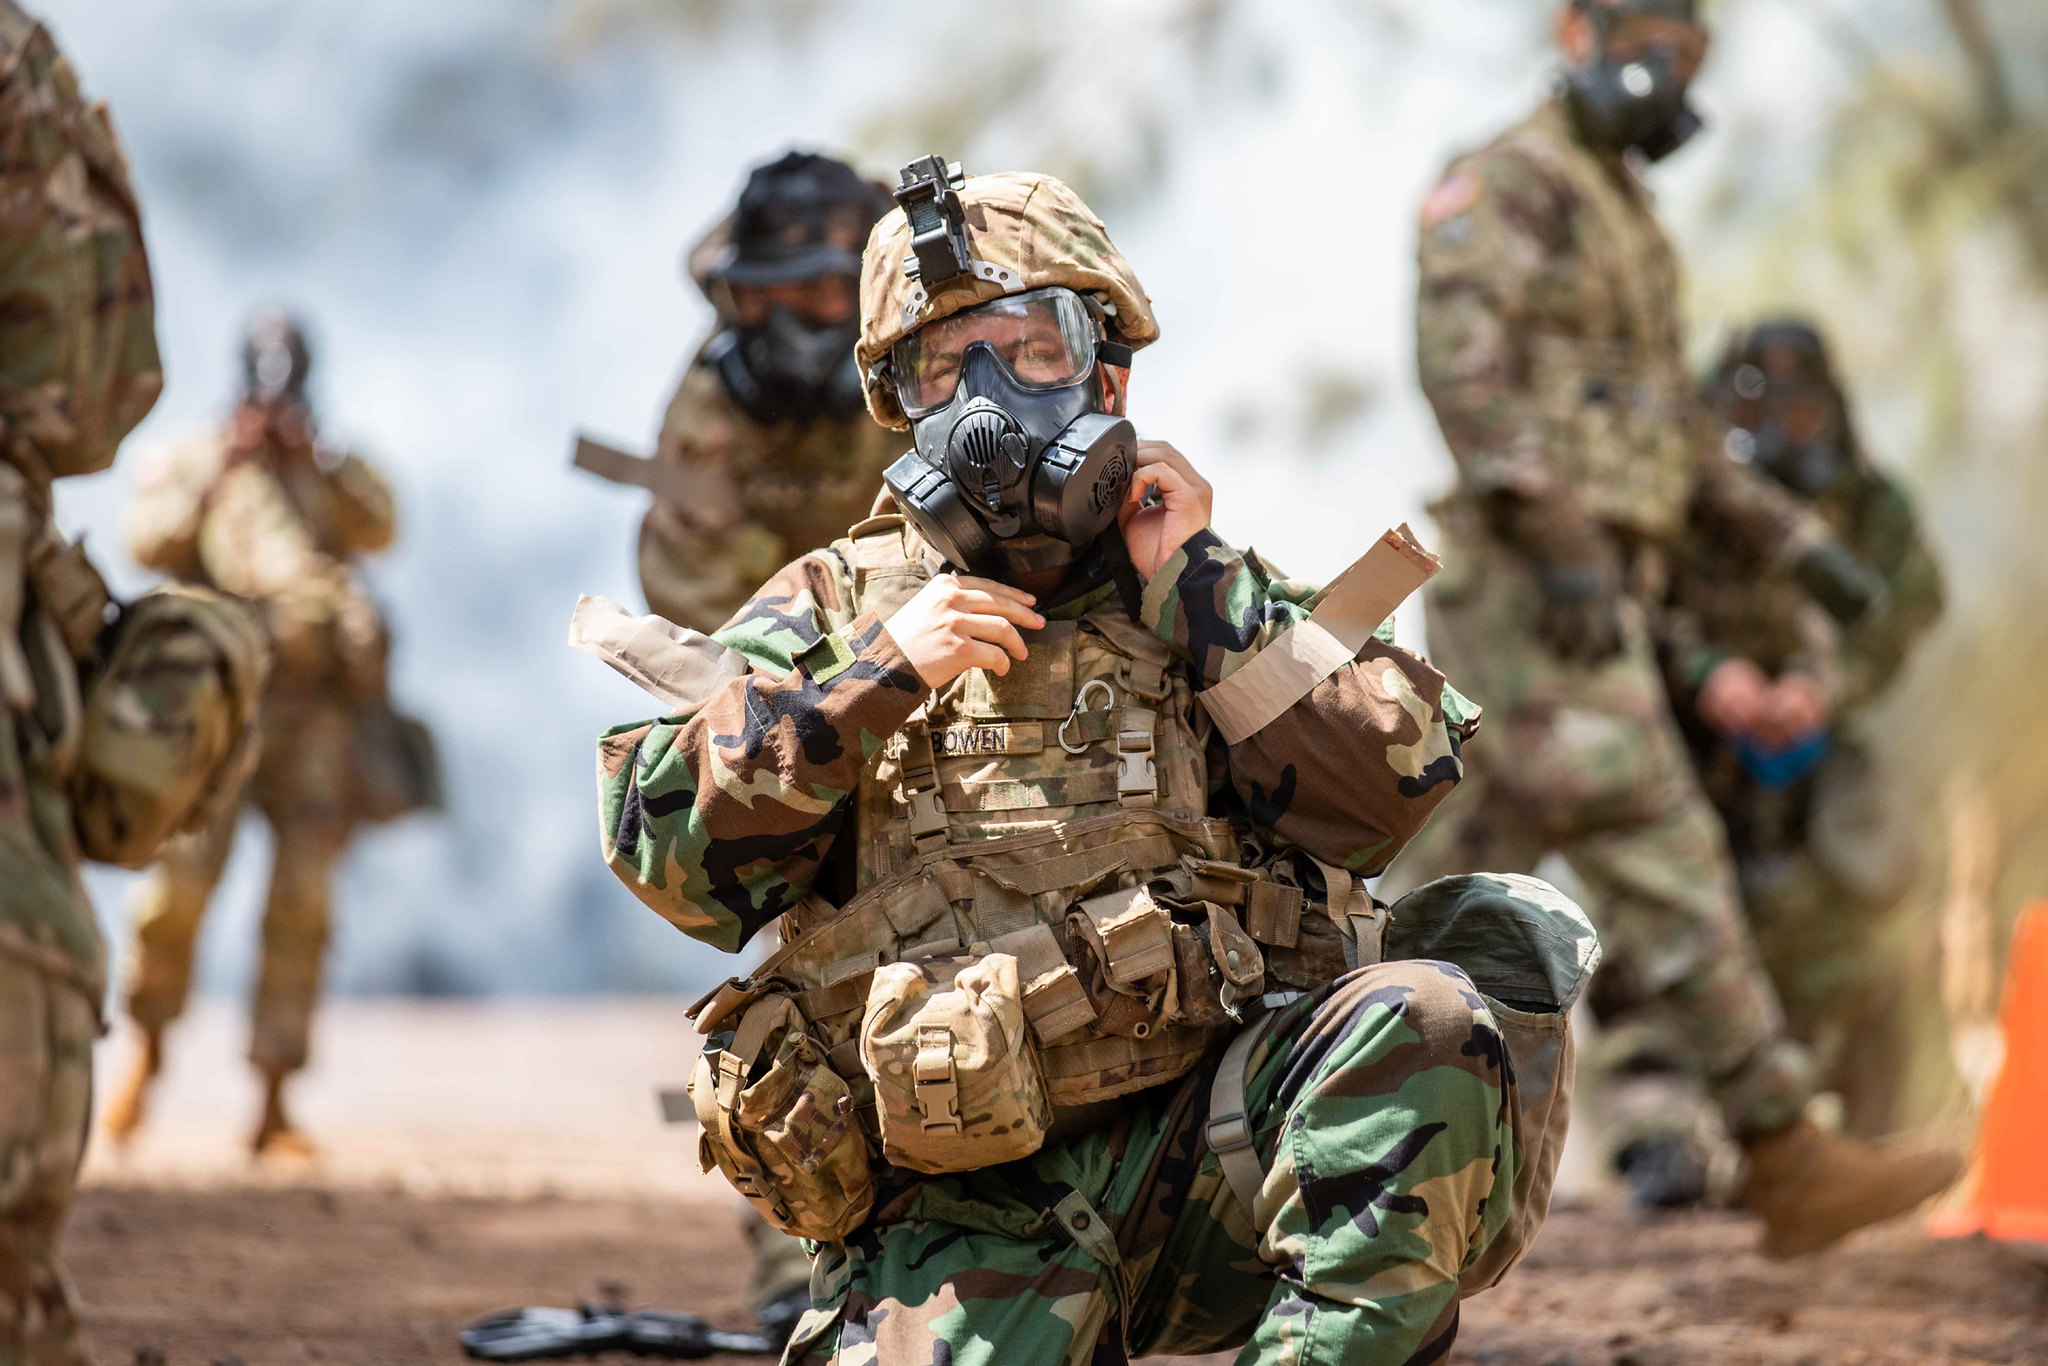 Soldiers of the Chemical Reconnaissance Platoon, 29th Brigade Engineer Battalion, 3rd Infantry Brigade Combat Team, 25th Infantry Division conducts a Chemical, Biological, Radiological, and Nuclear Academy at the Kahuku Training Area, Hawaii on Aug. 20, 2020. (1st Lt. Angelo Mejia/Army)